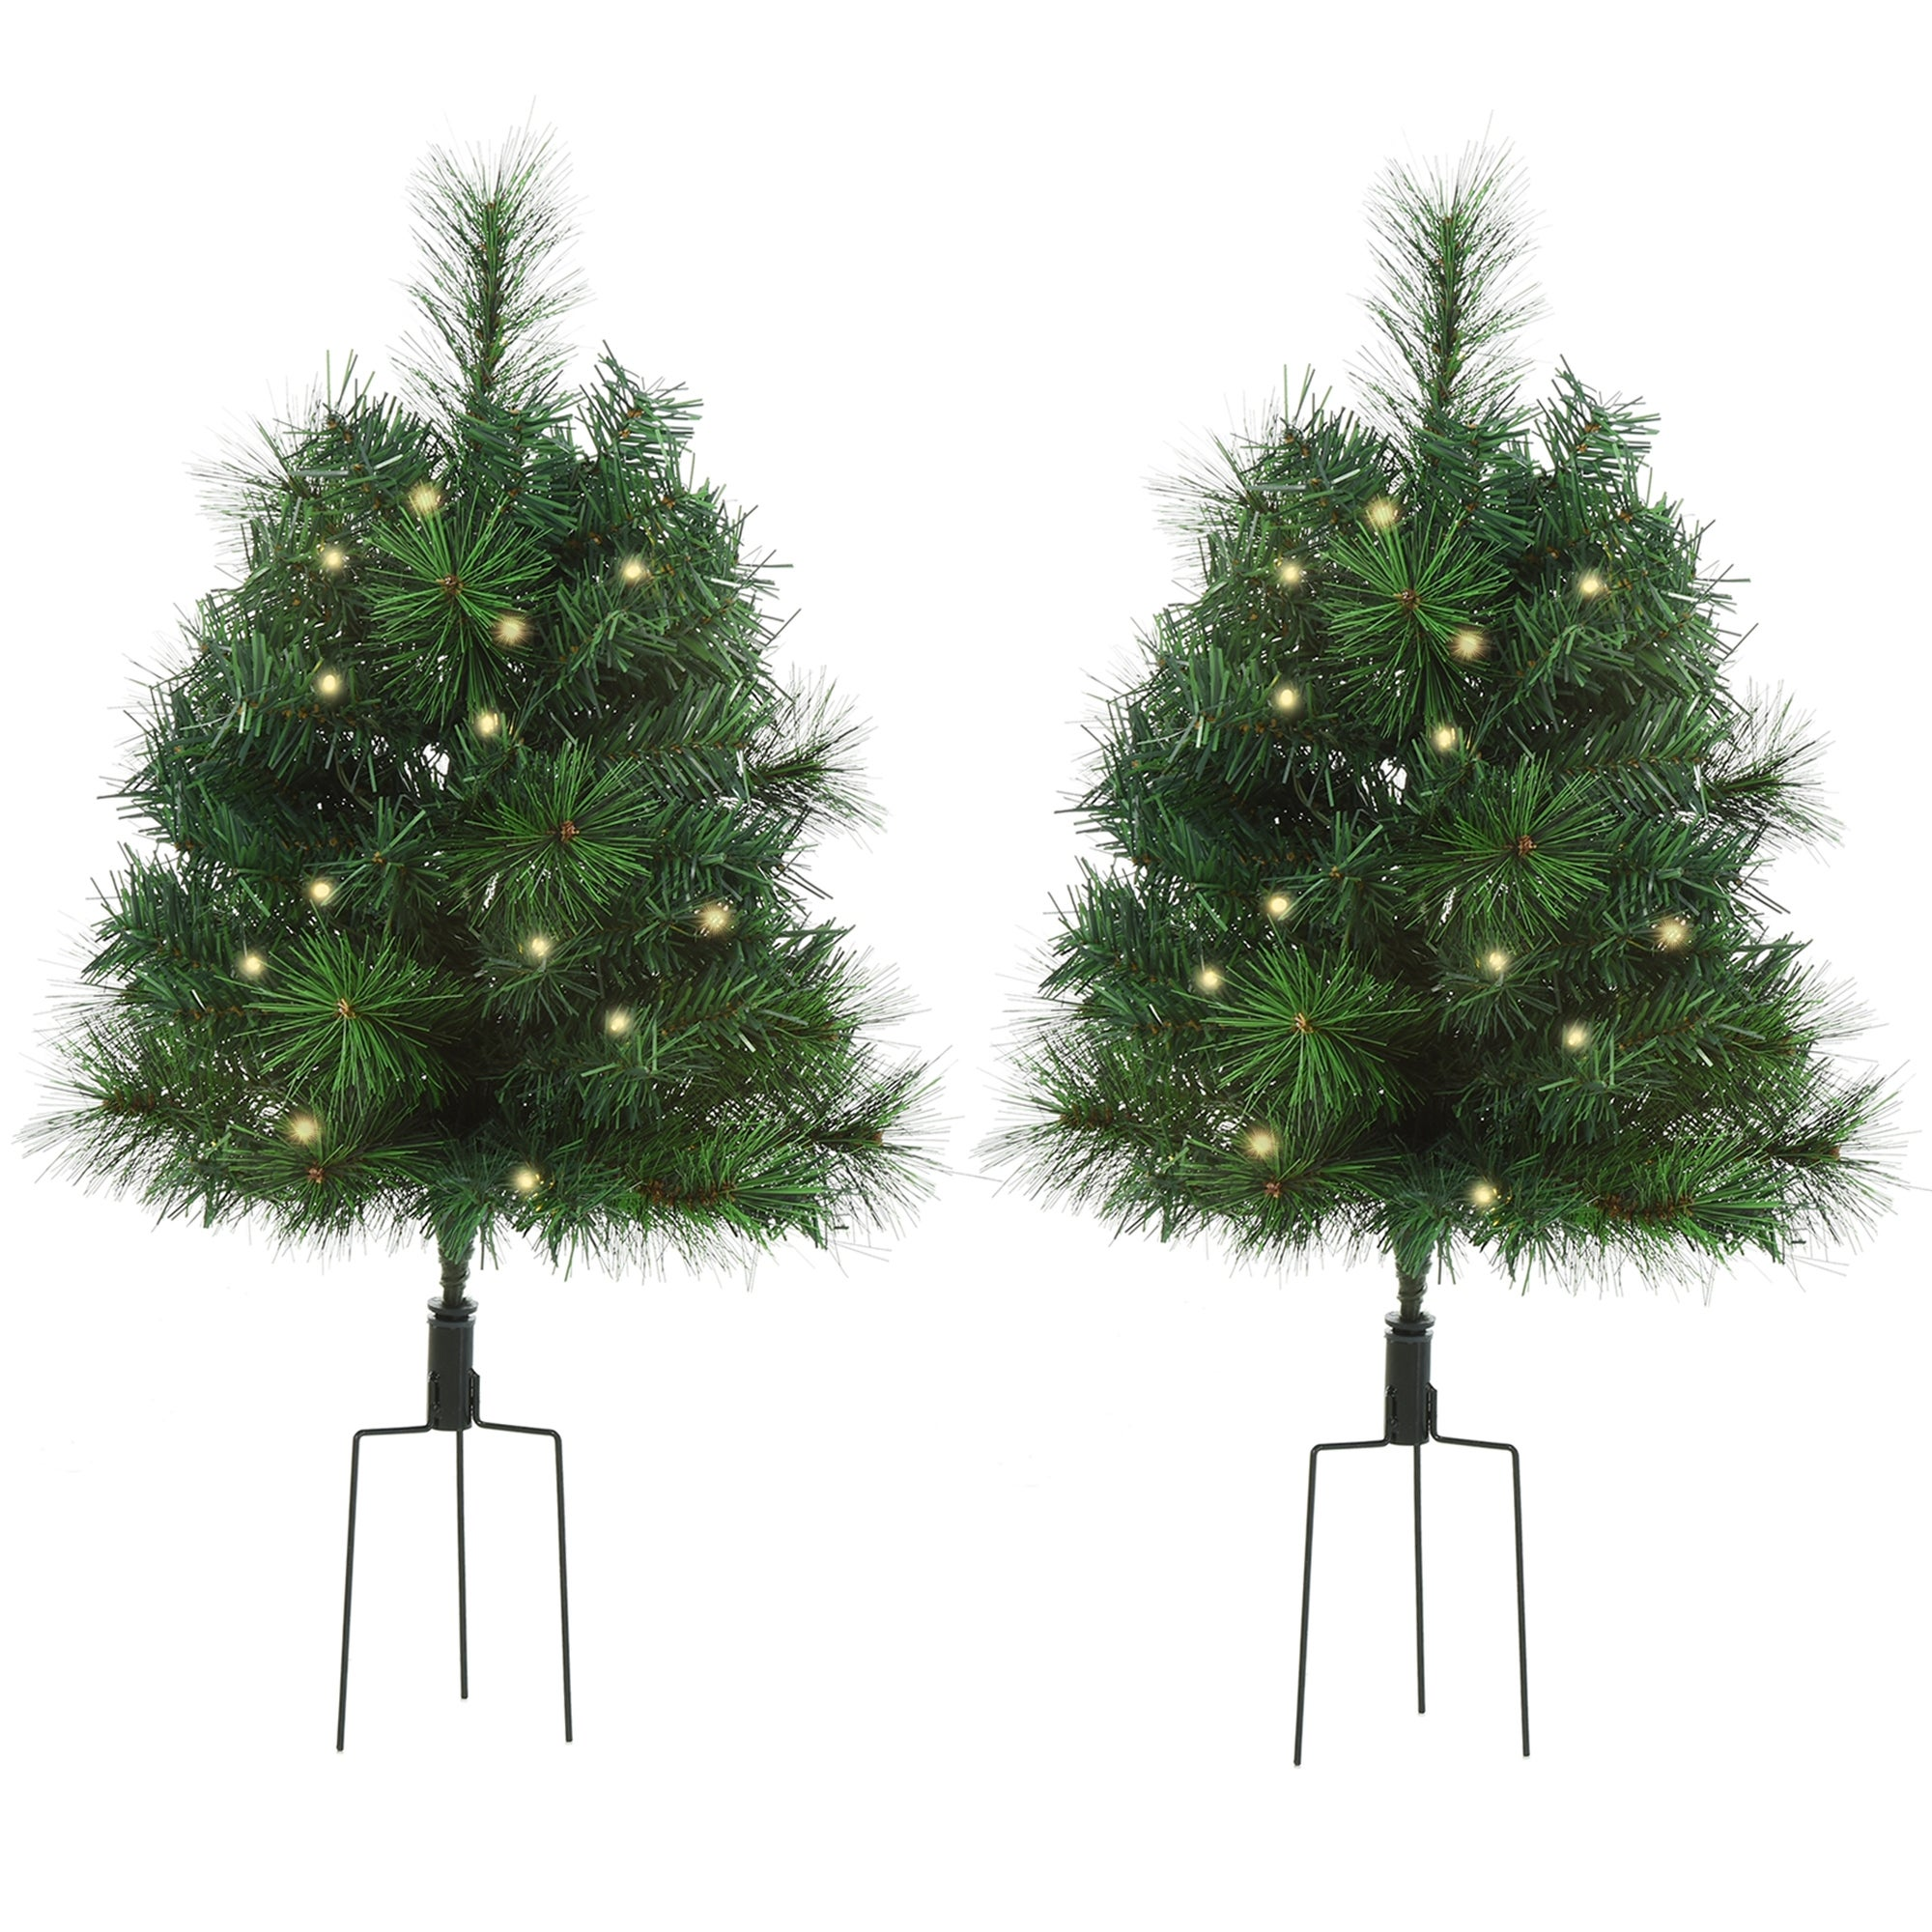 Homcom 2 Piece Artificial Pine Tree Warm White Light Pre Lit Holiday Home Christmas Cordless Decoration With Stakes Overstock 32332626